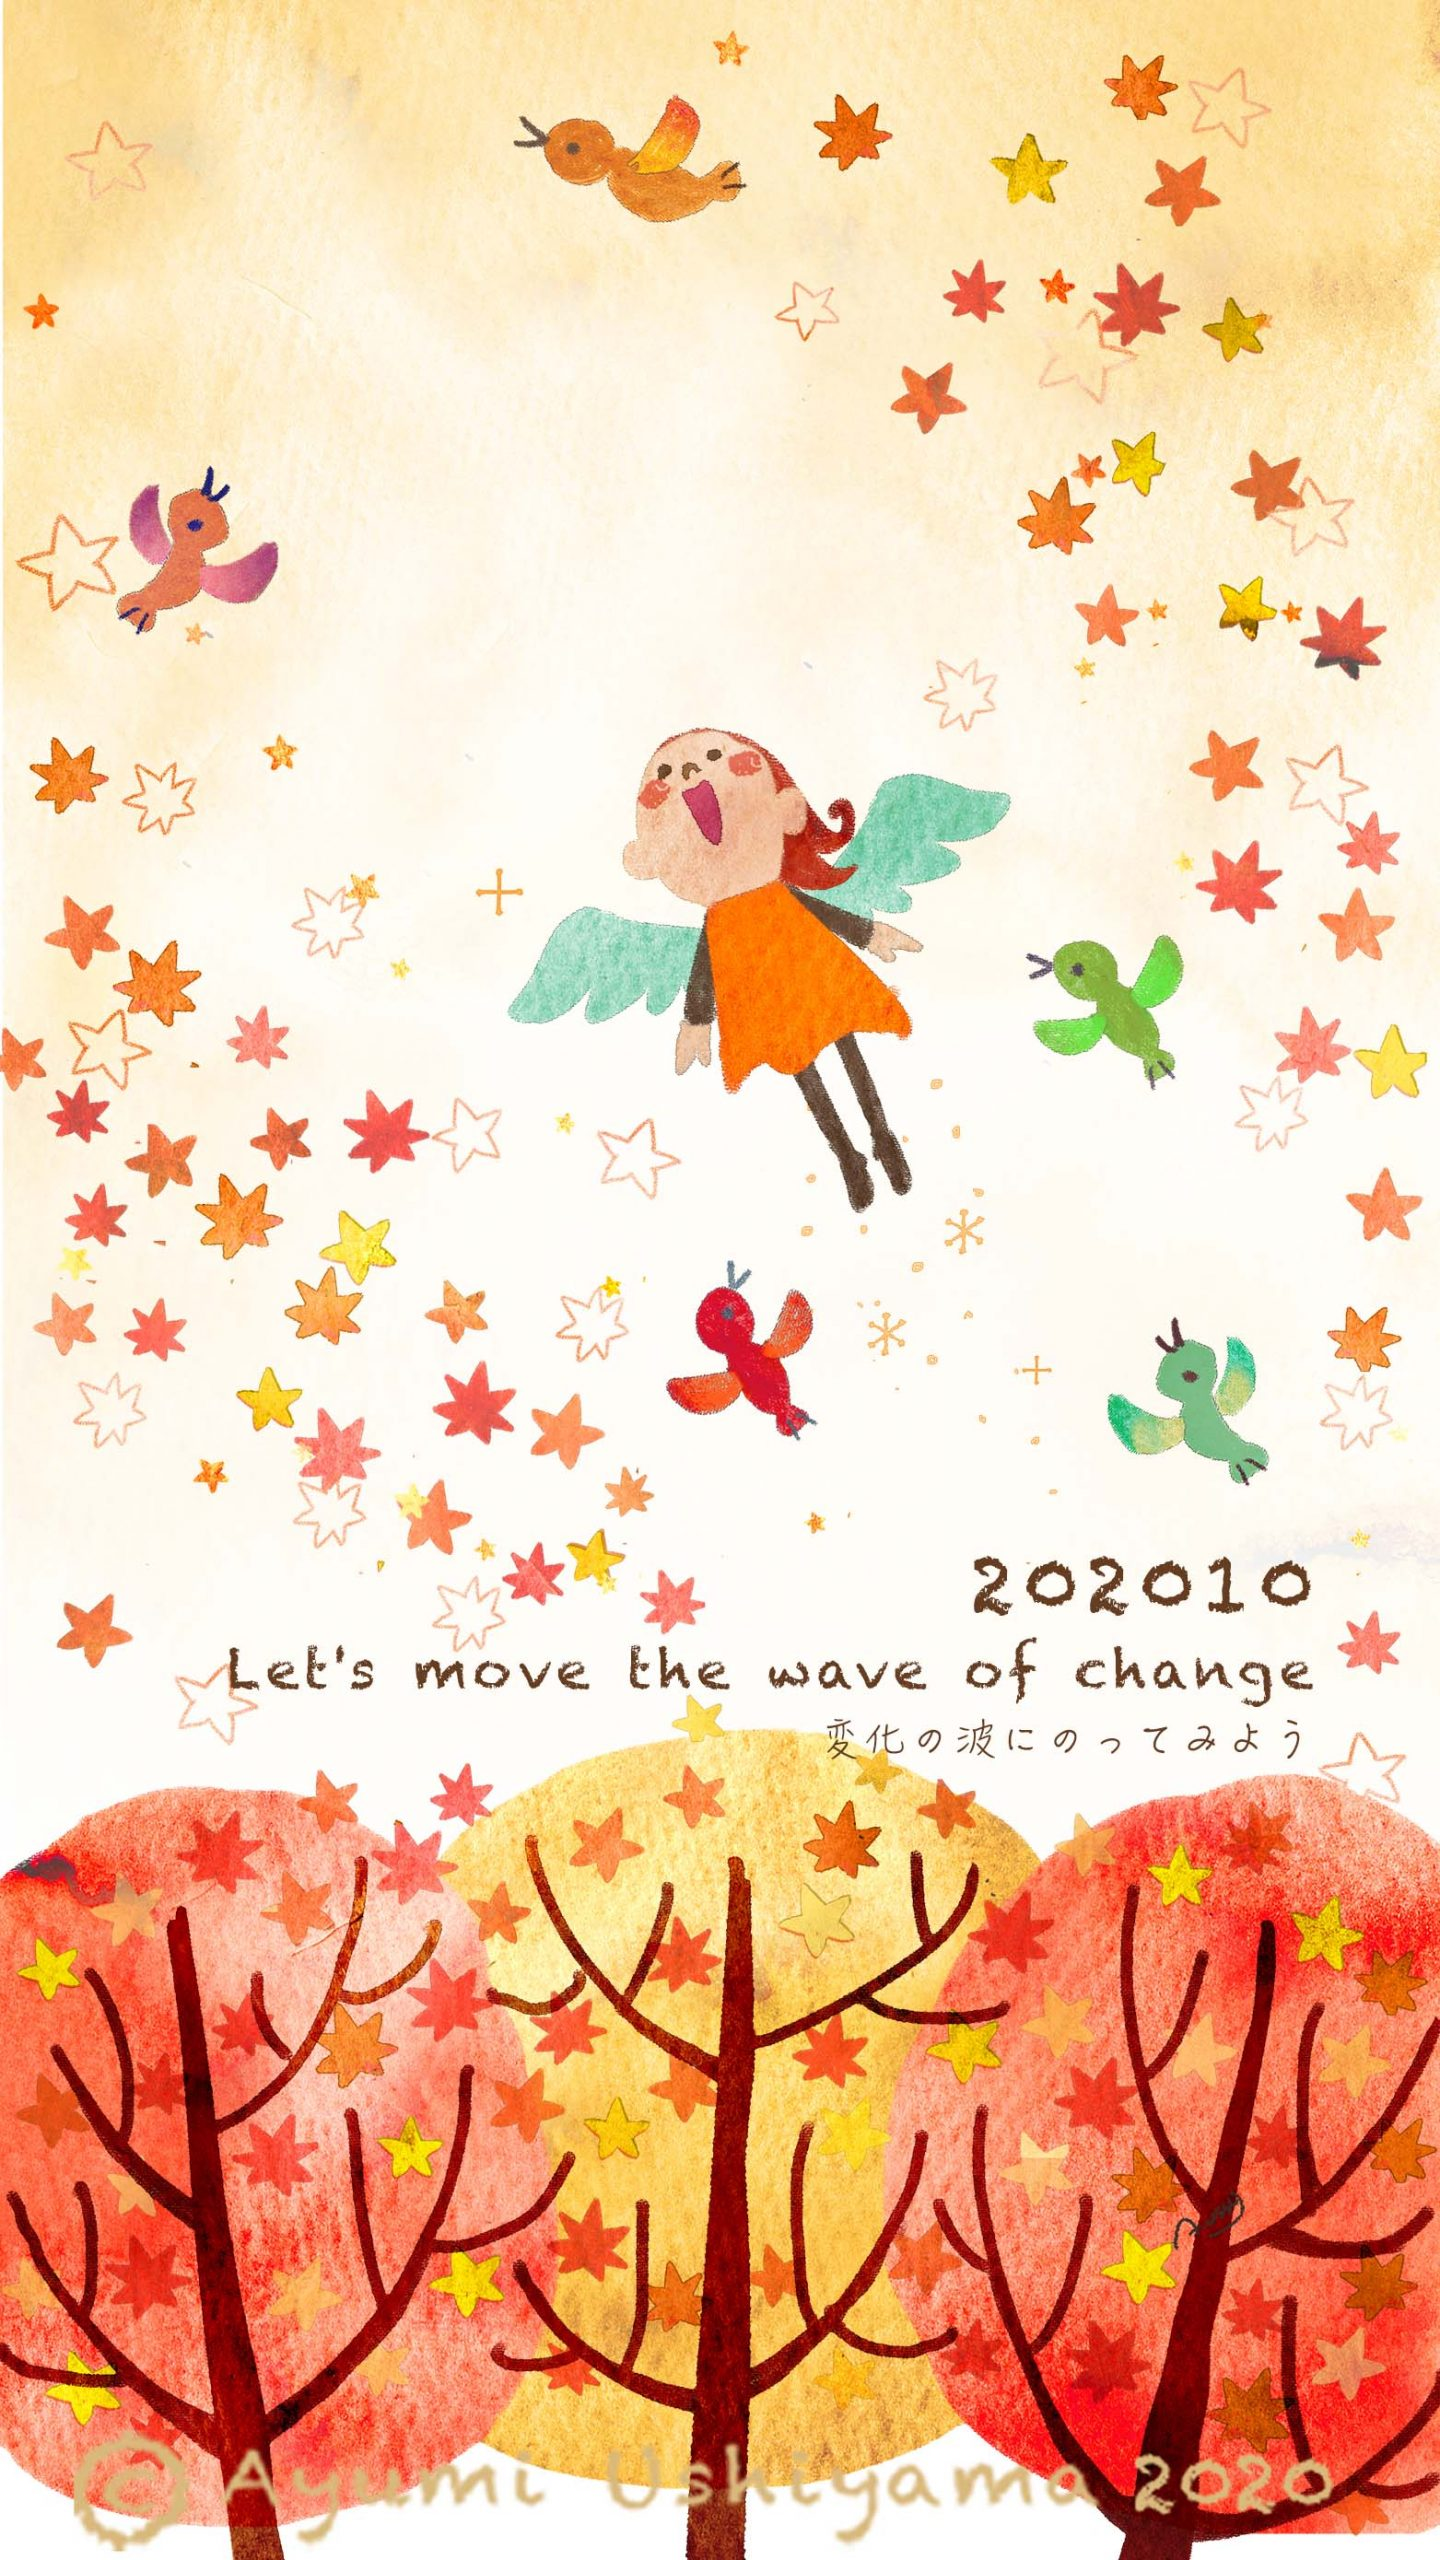 2020.10『Let's move the wave of change』